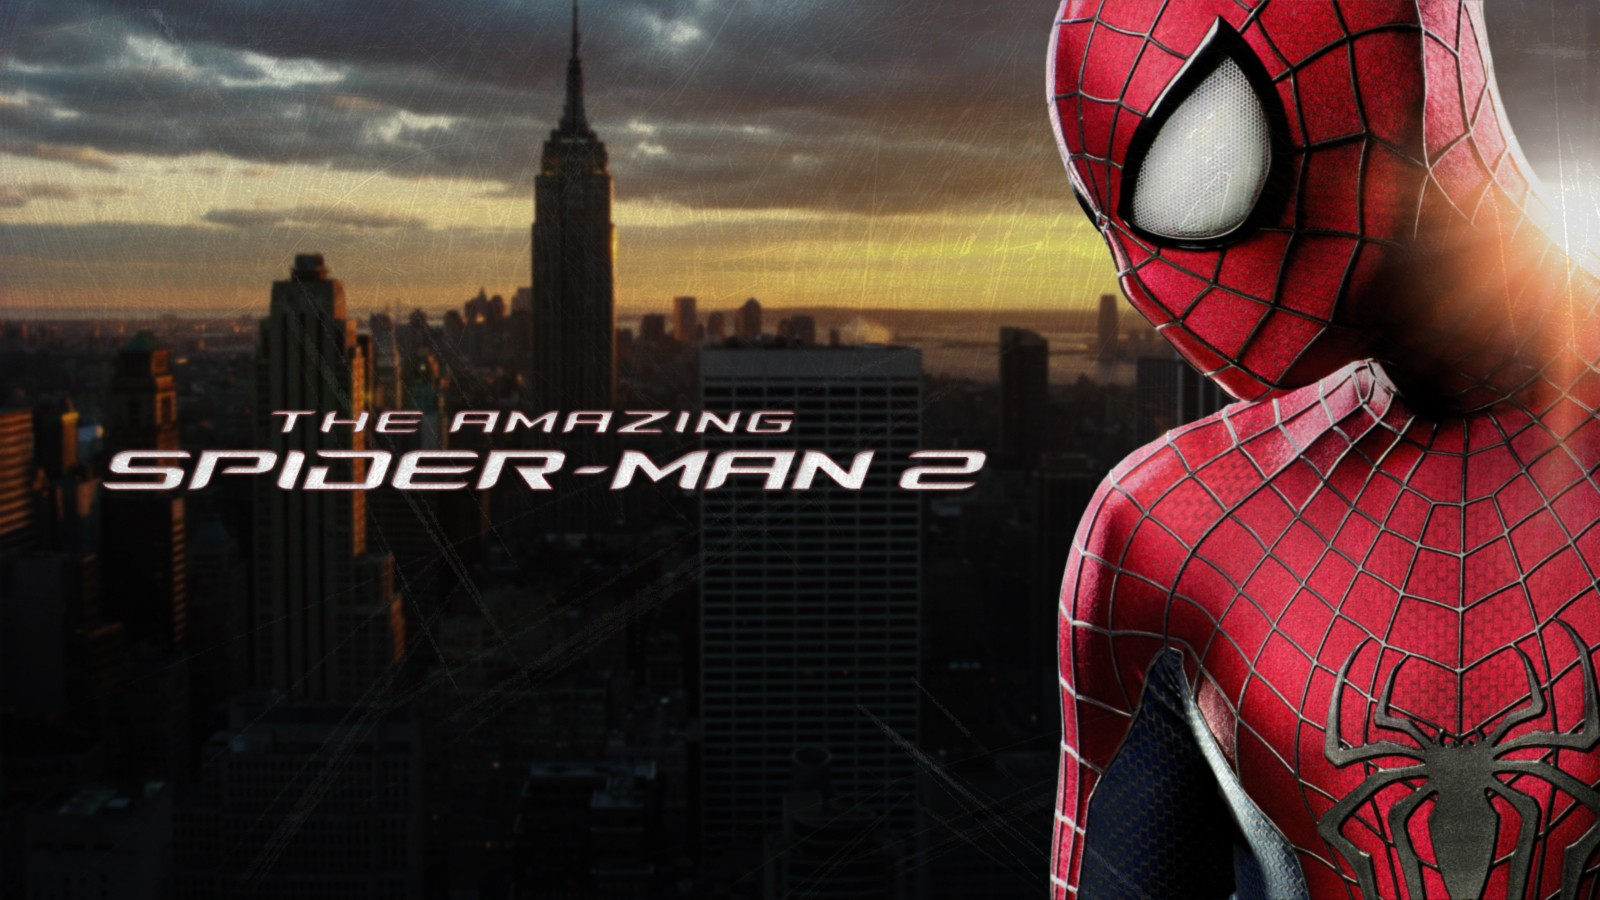 The Amazing Spider Man 2 v1 2 0m Apk + Mod + Data Cracked for